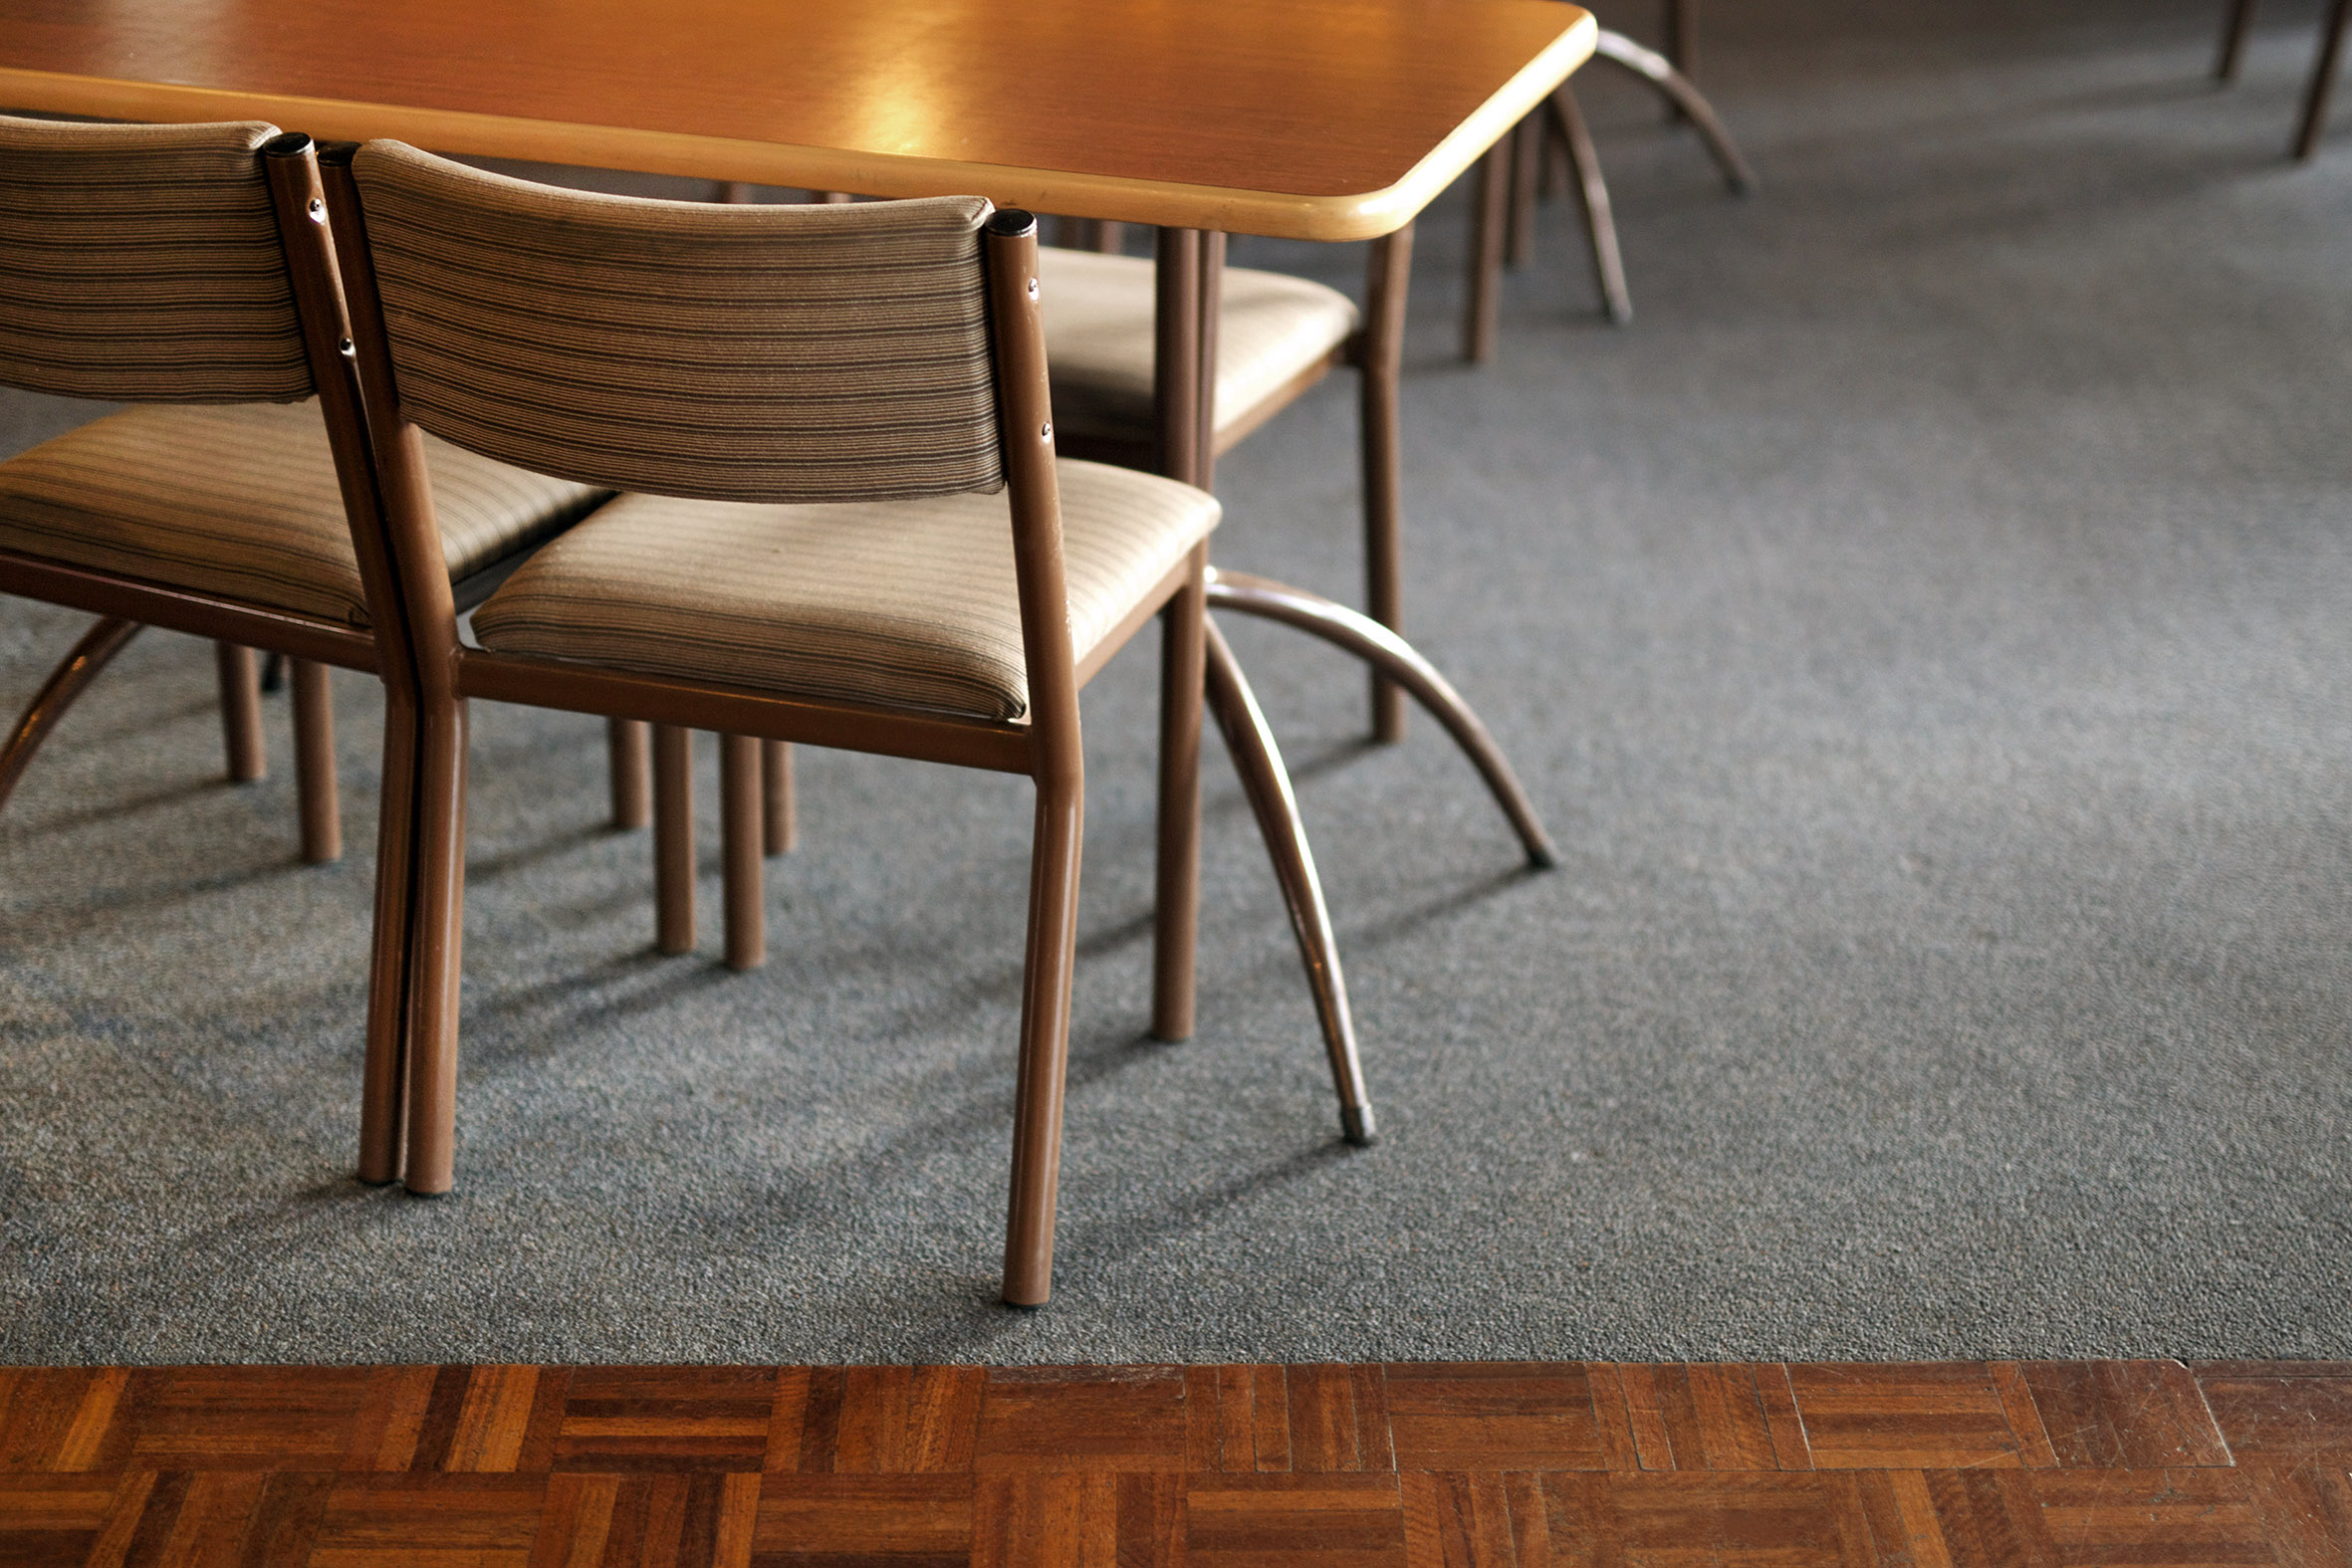 NZ chairs and table.jpg